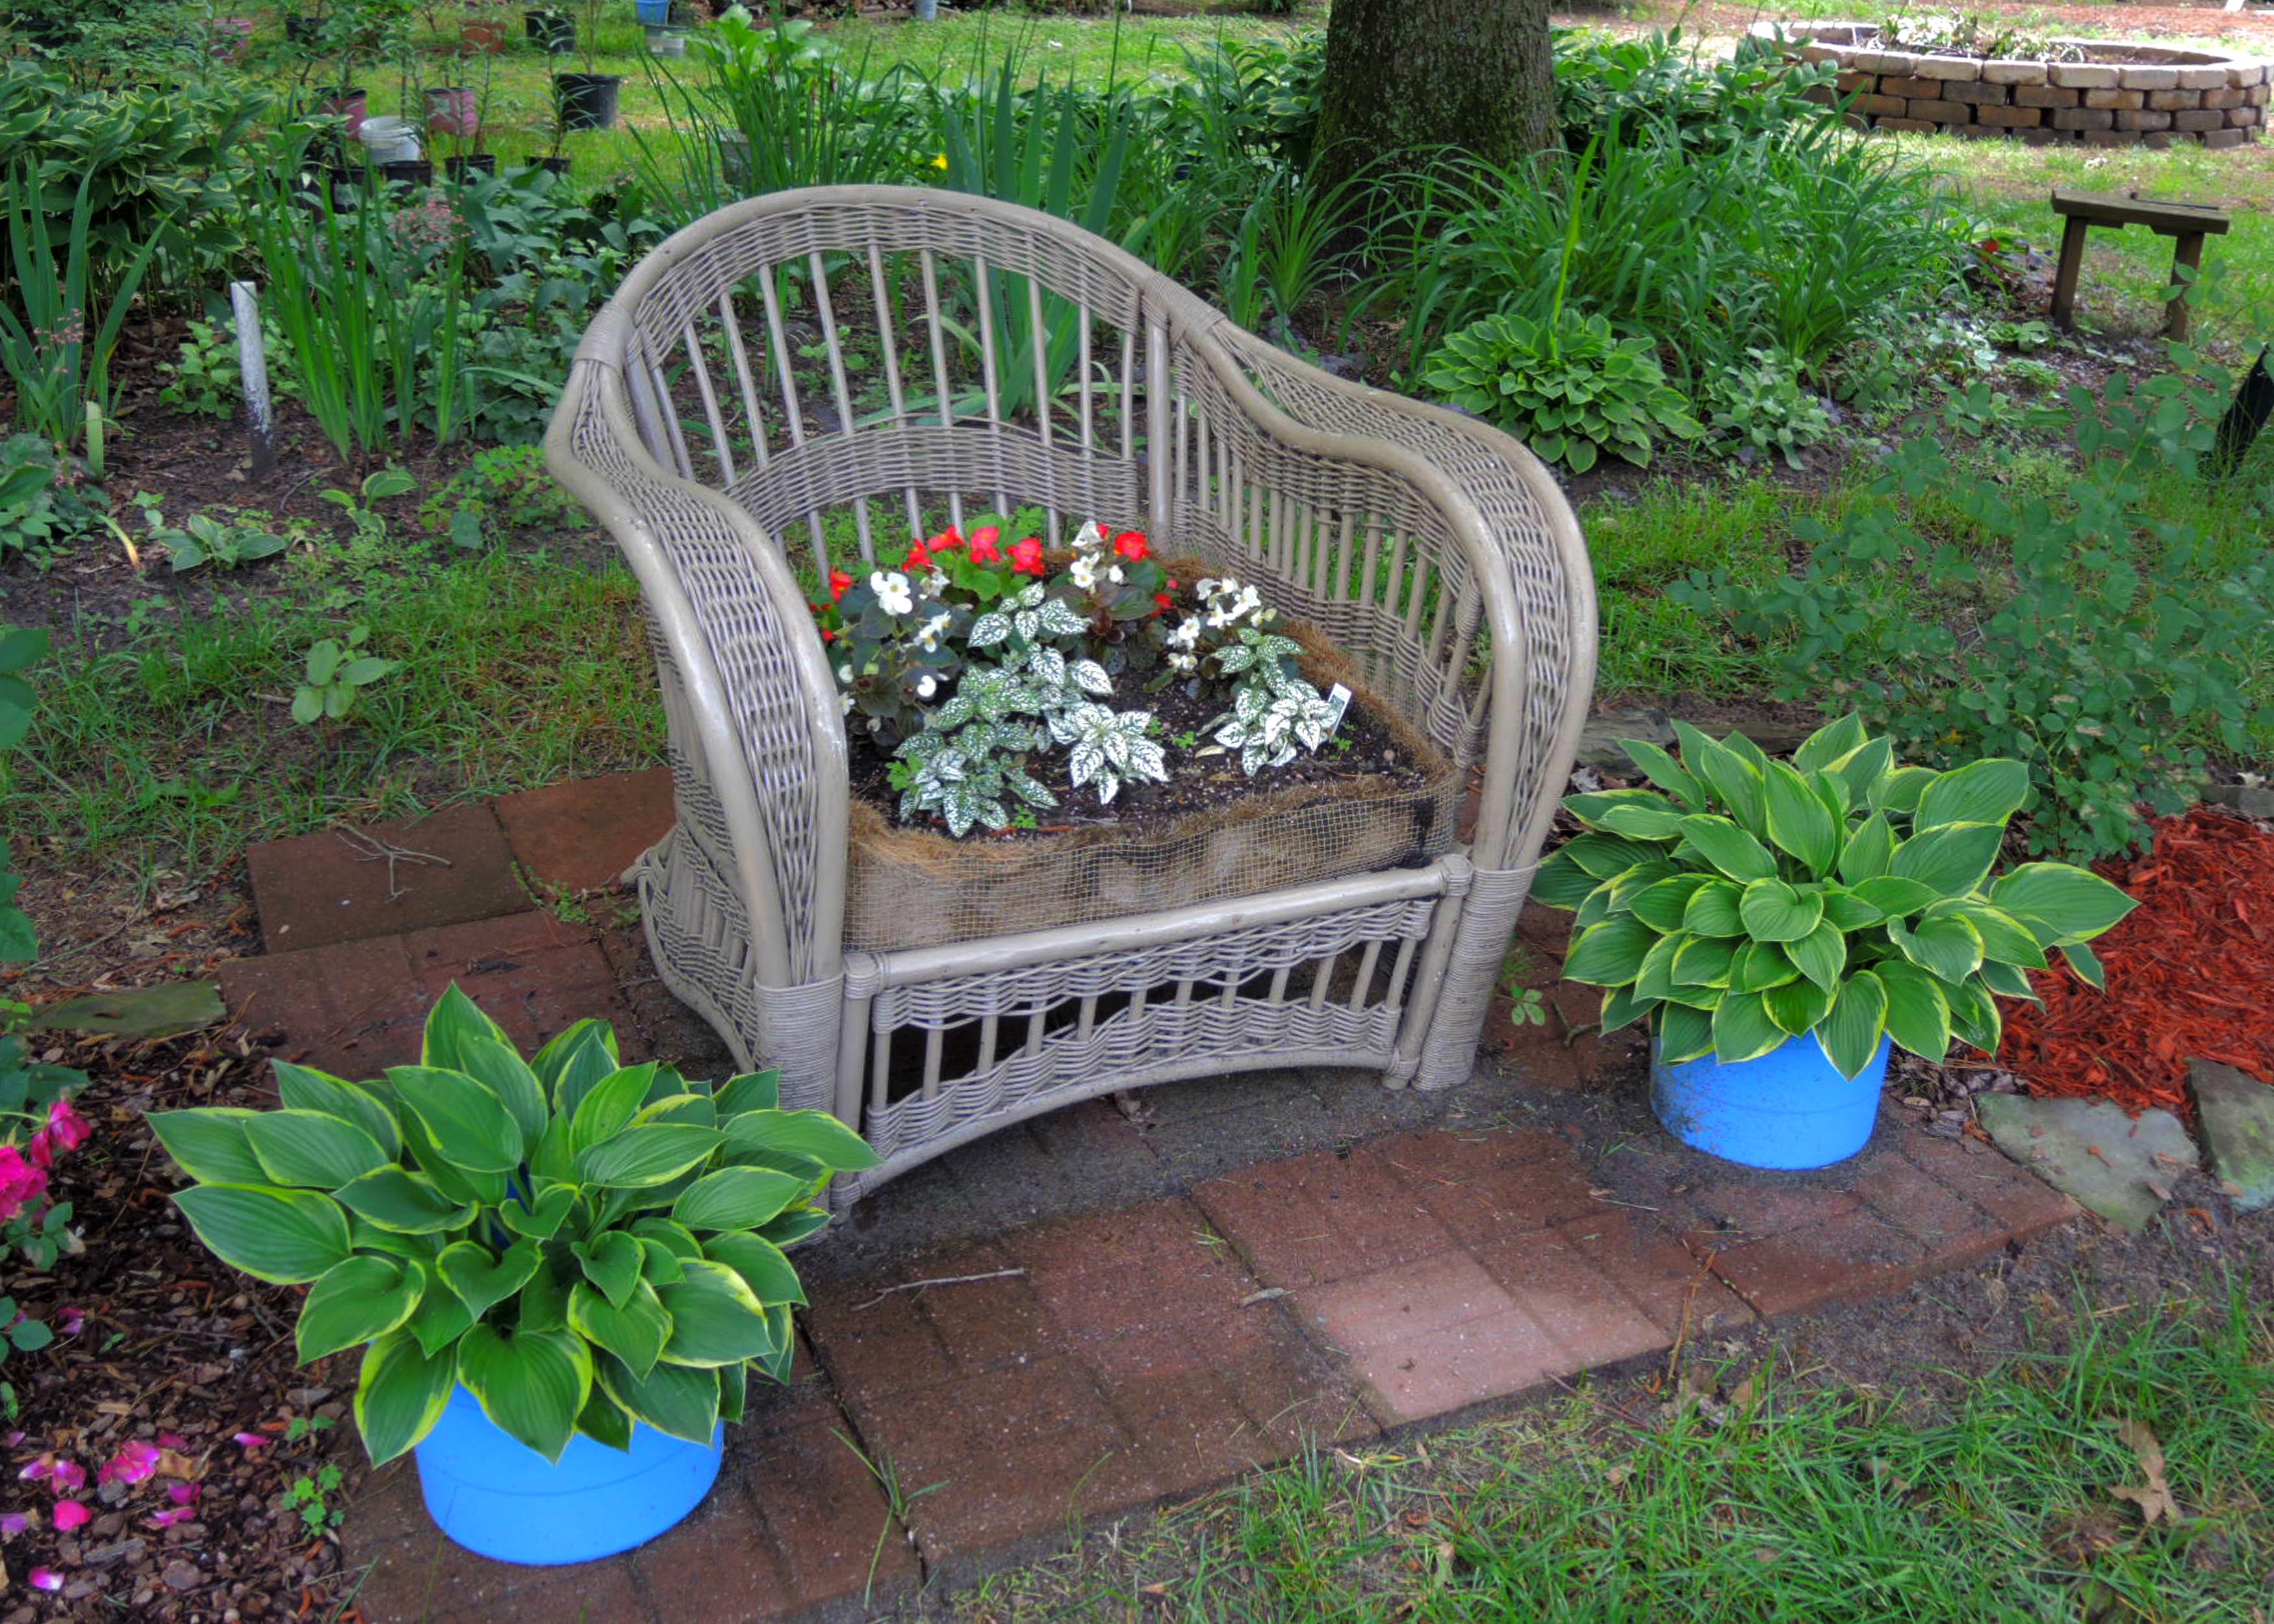 DSCN0002 - chair planter.jpg